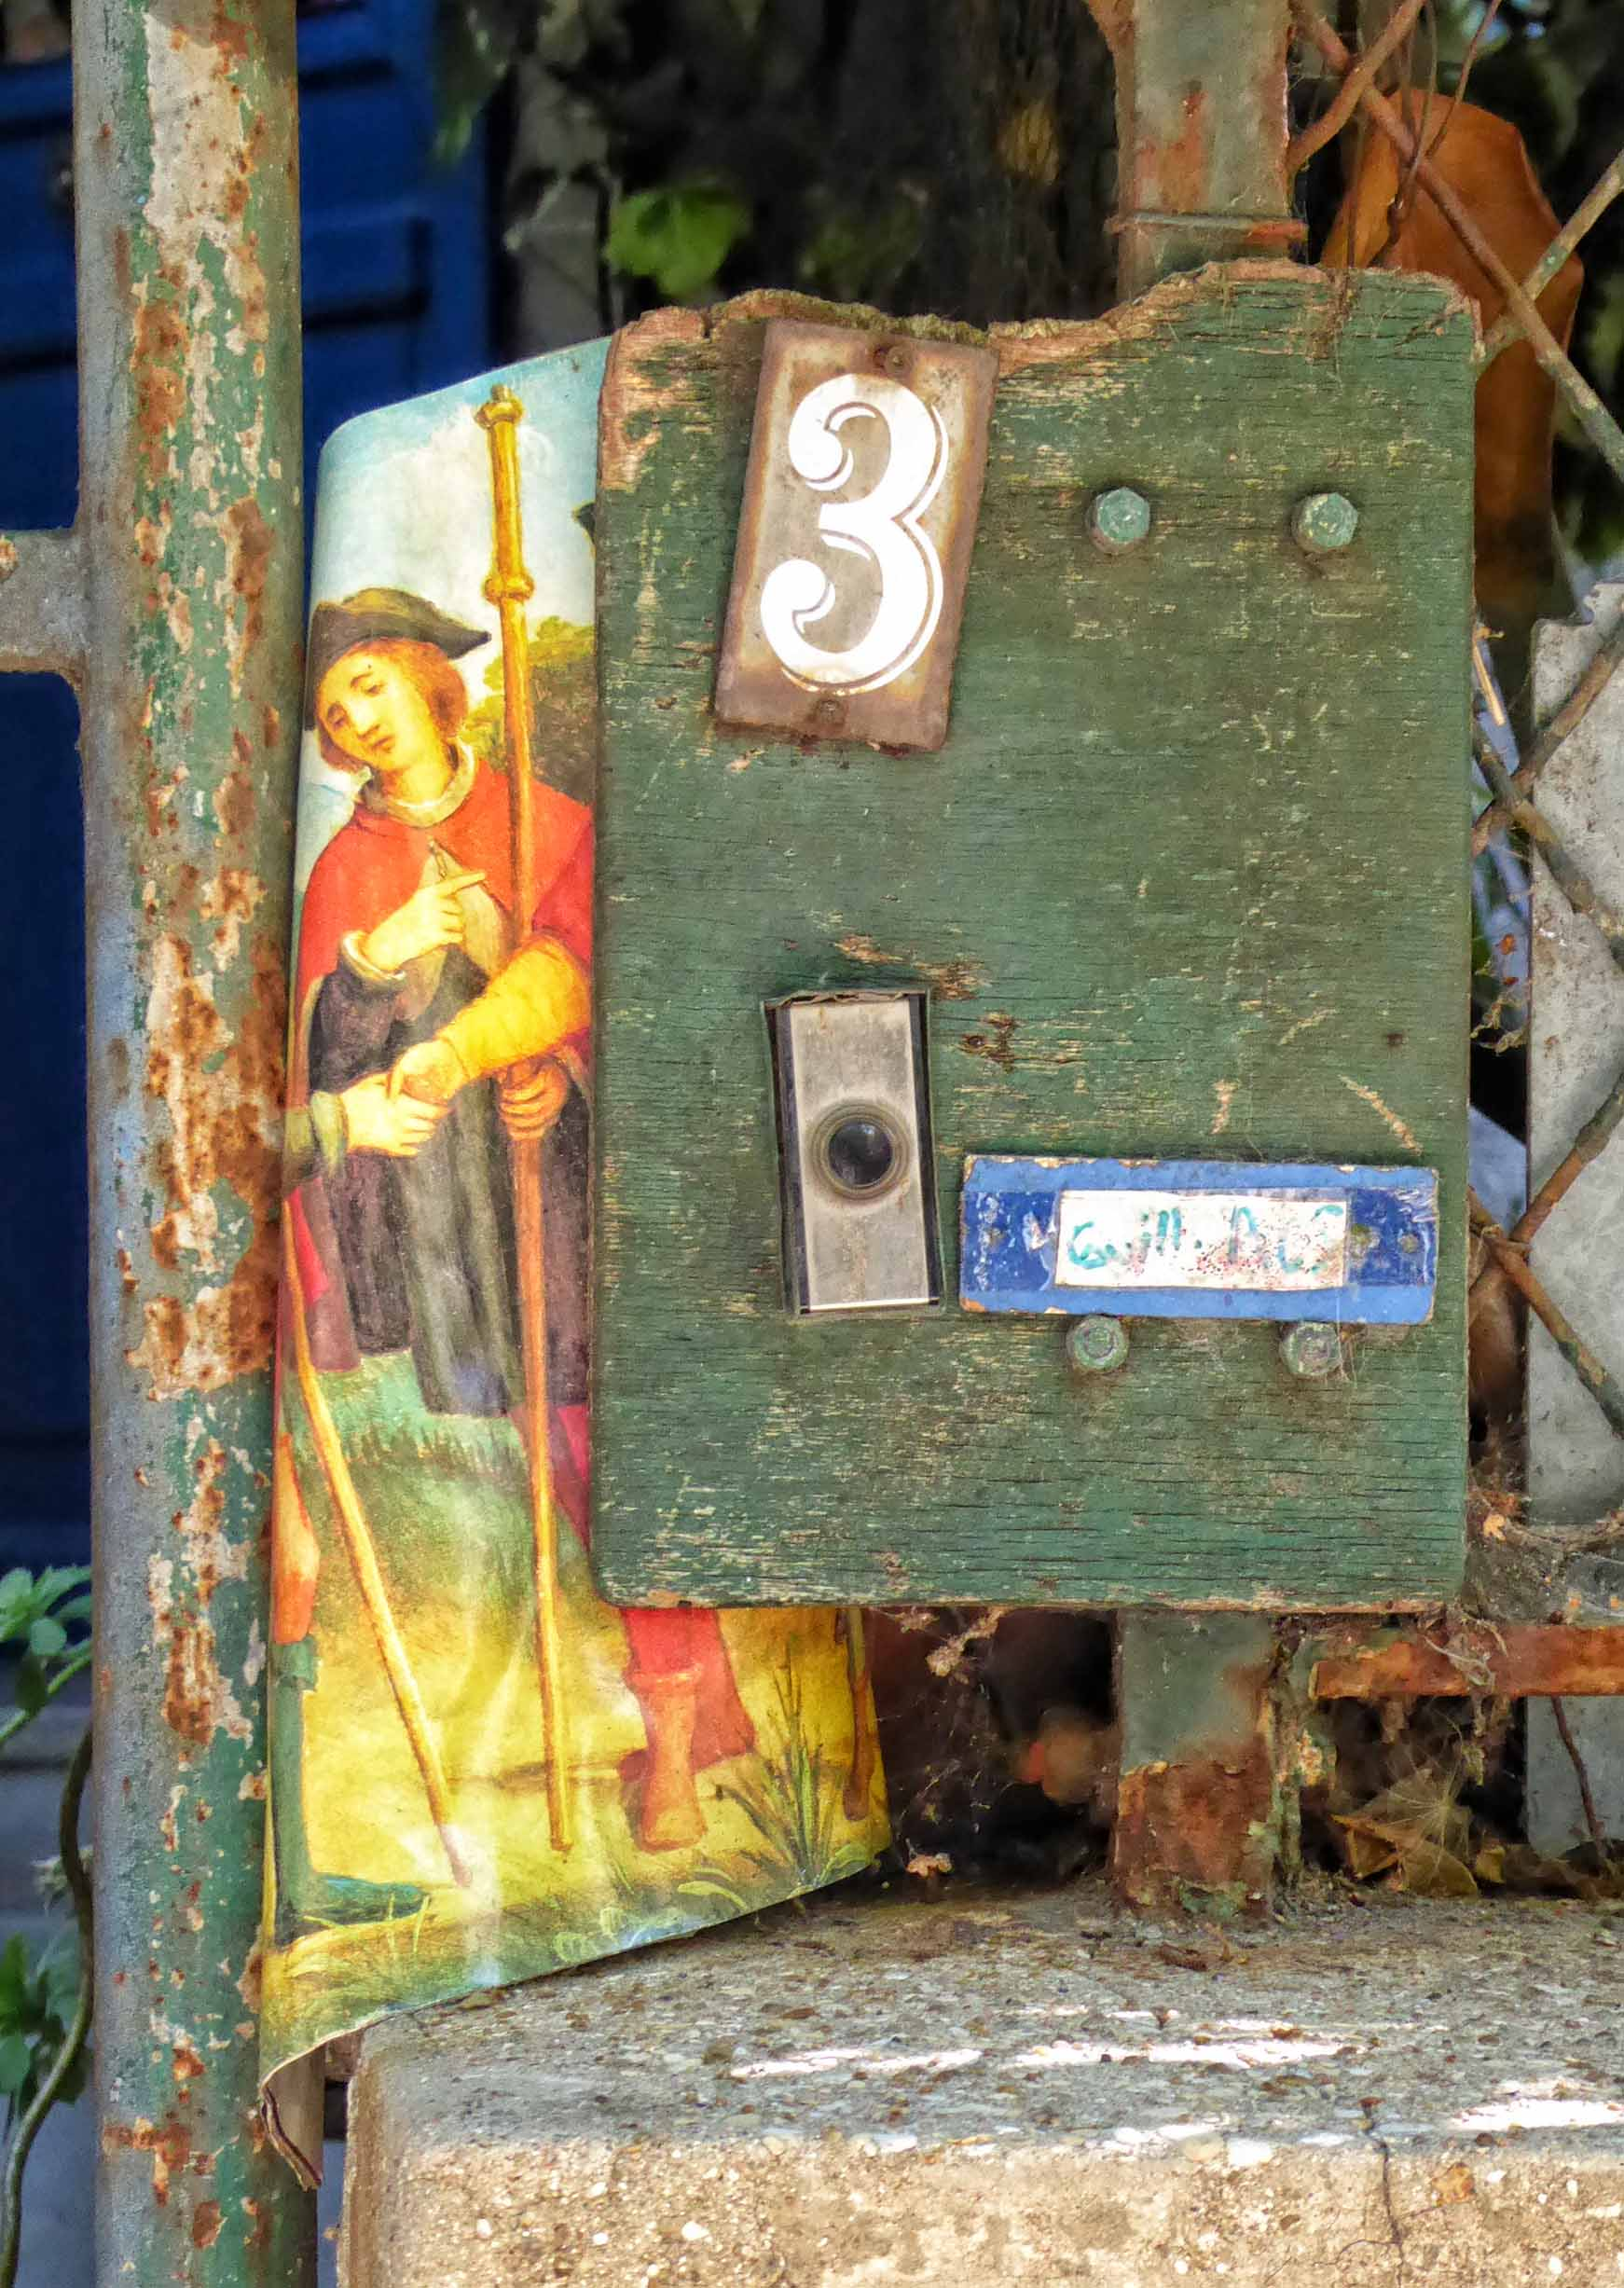 Metal gate with number 3 and small picture attached